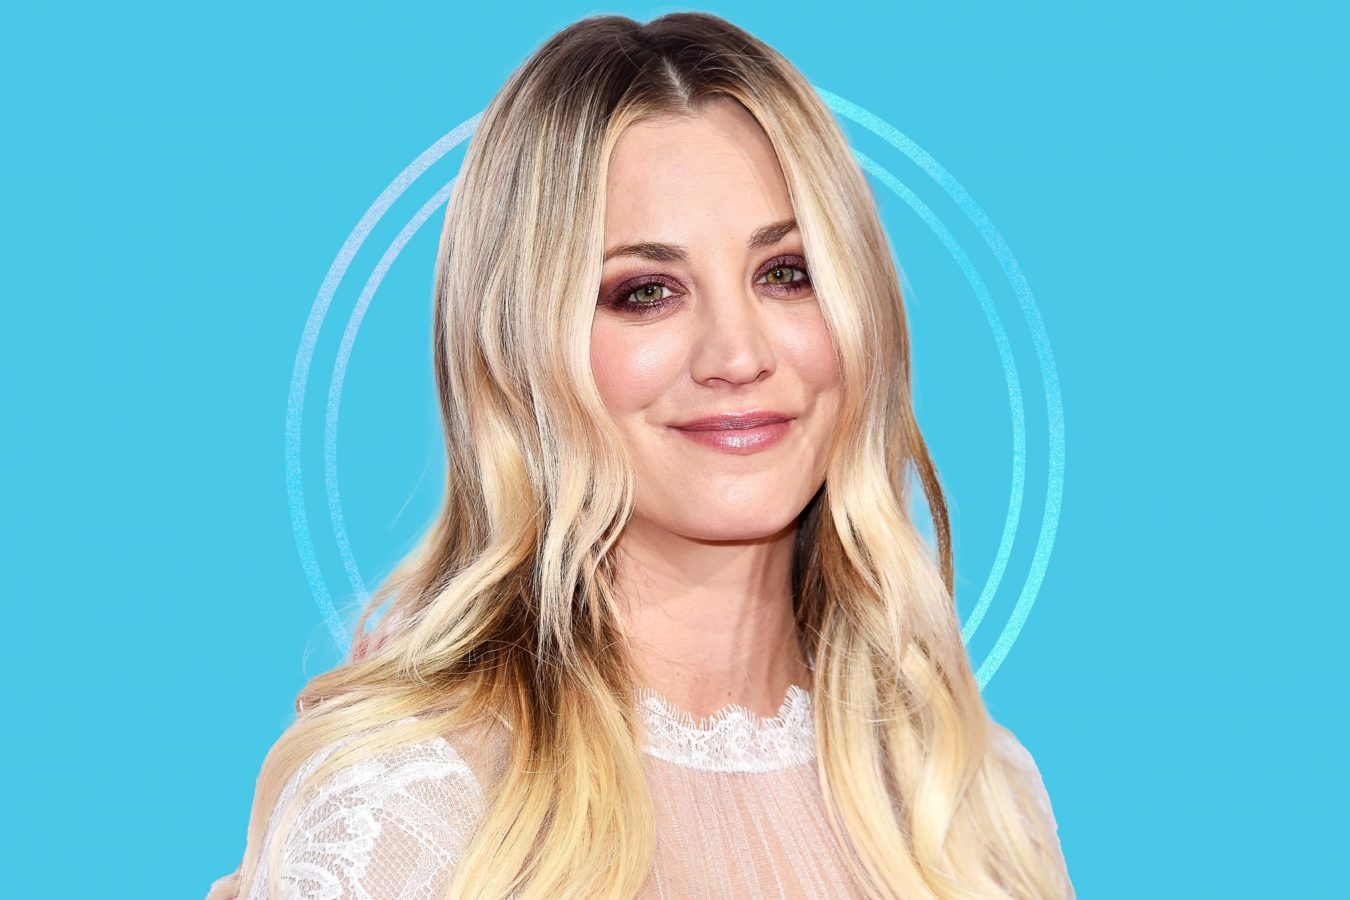 Kaley Cuoco just crushed this seriously intense pre-Emmys workout